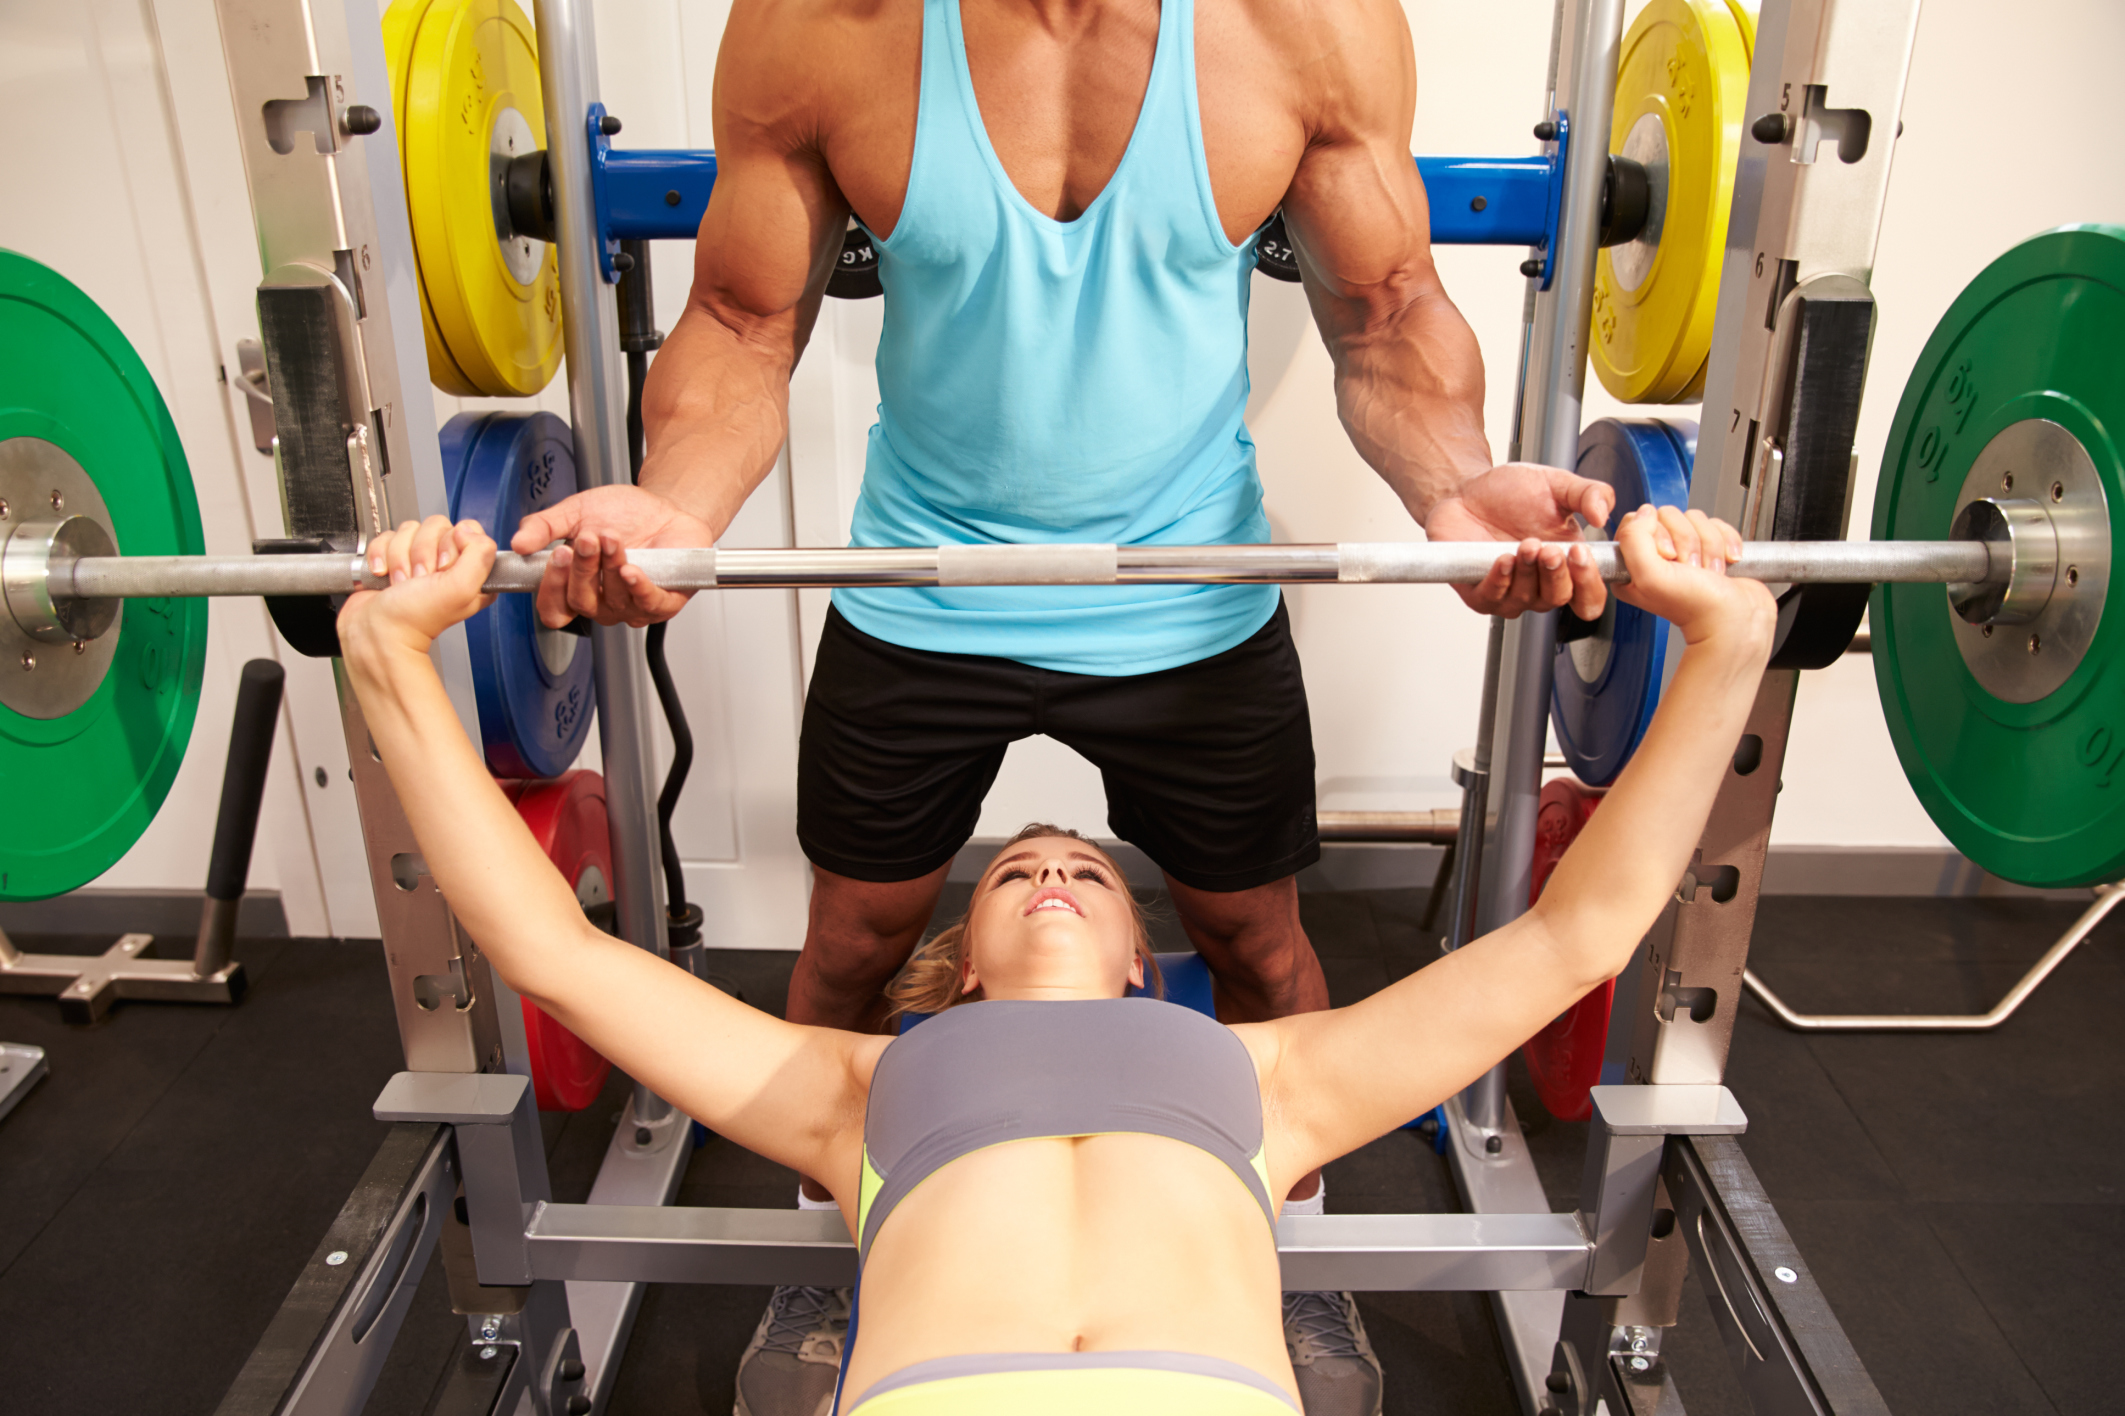 Strength Standards for Lifting Weights